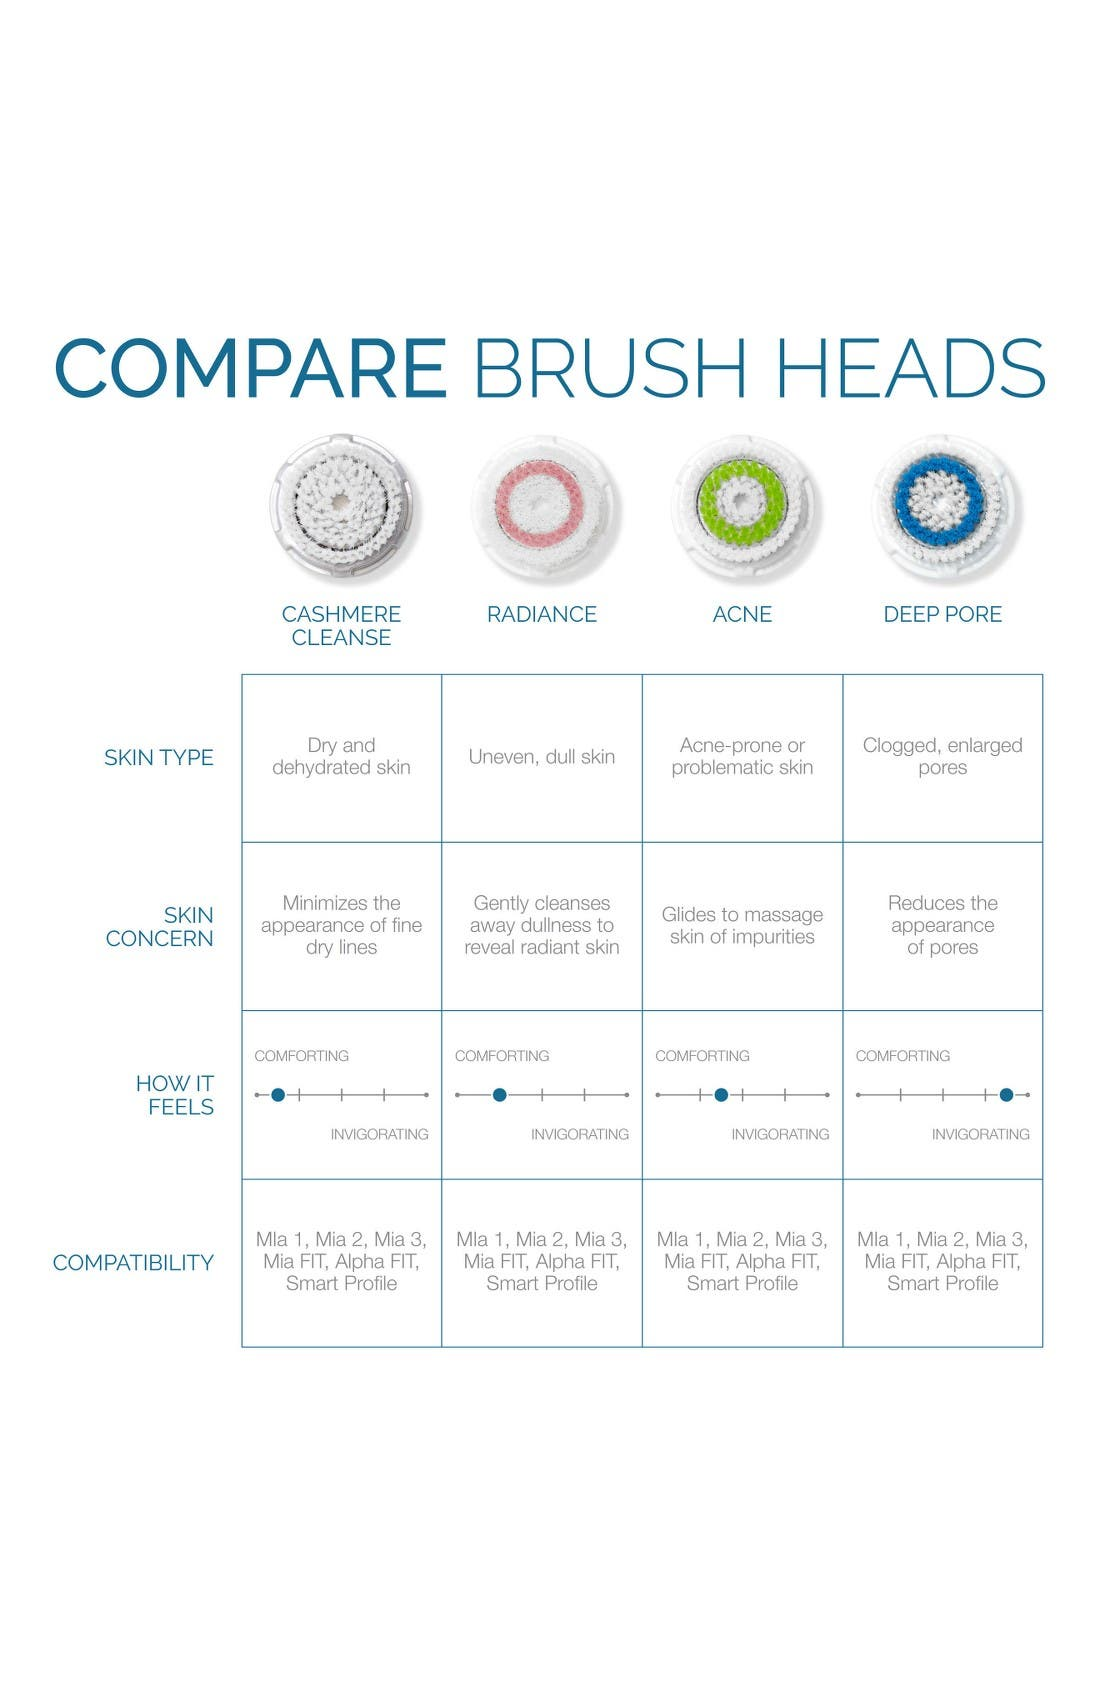 Alternate Image 3  - CLARISONIC 'Cashmere Cleanse' Luxury Face Brush Head